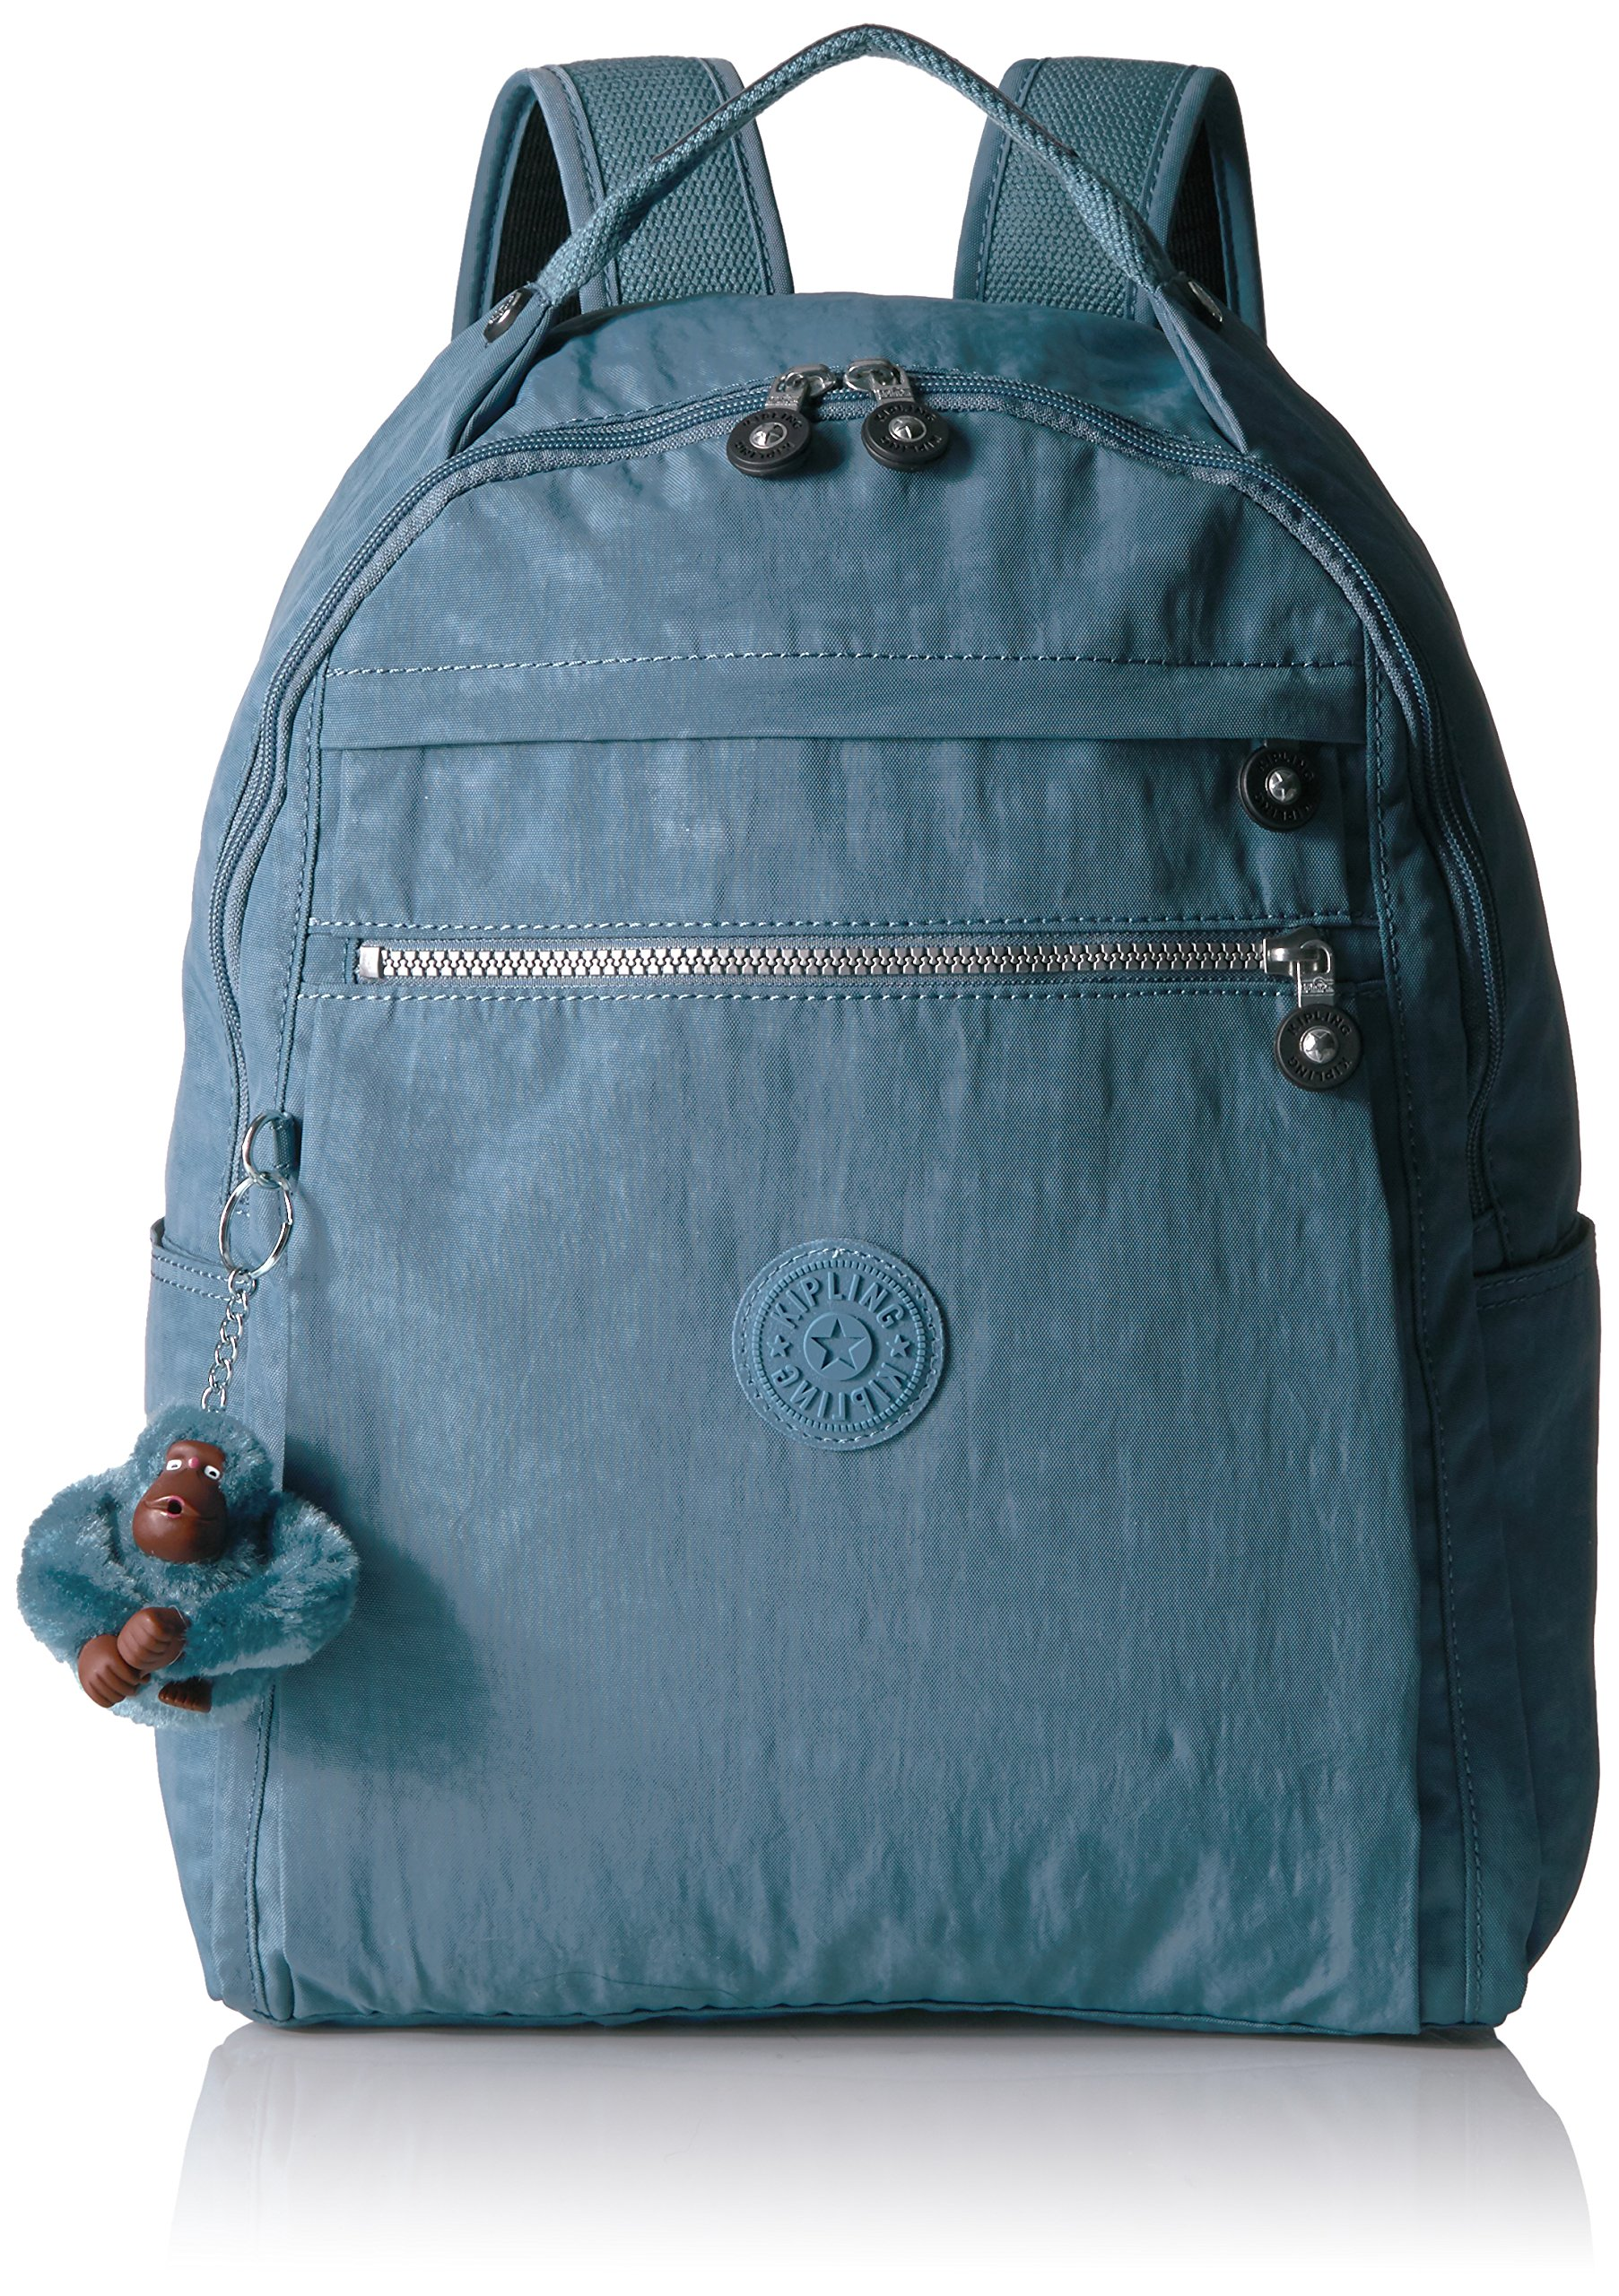 Kipling Micah Backpack by Kipling